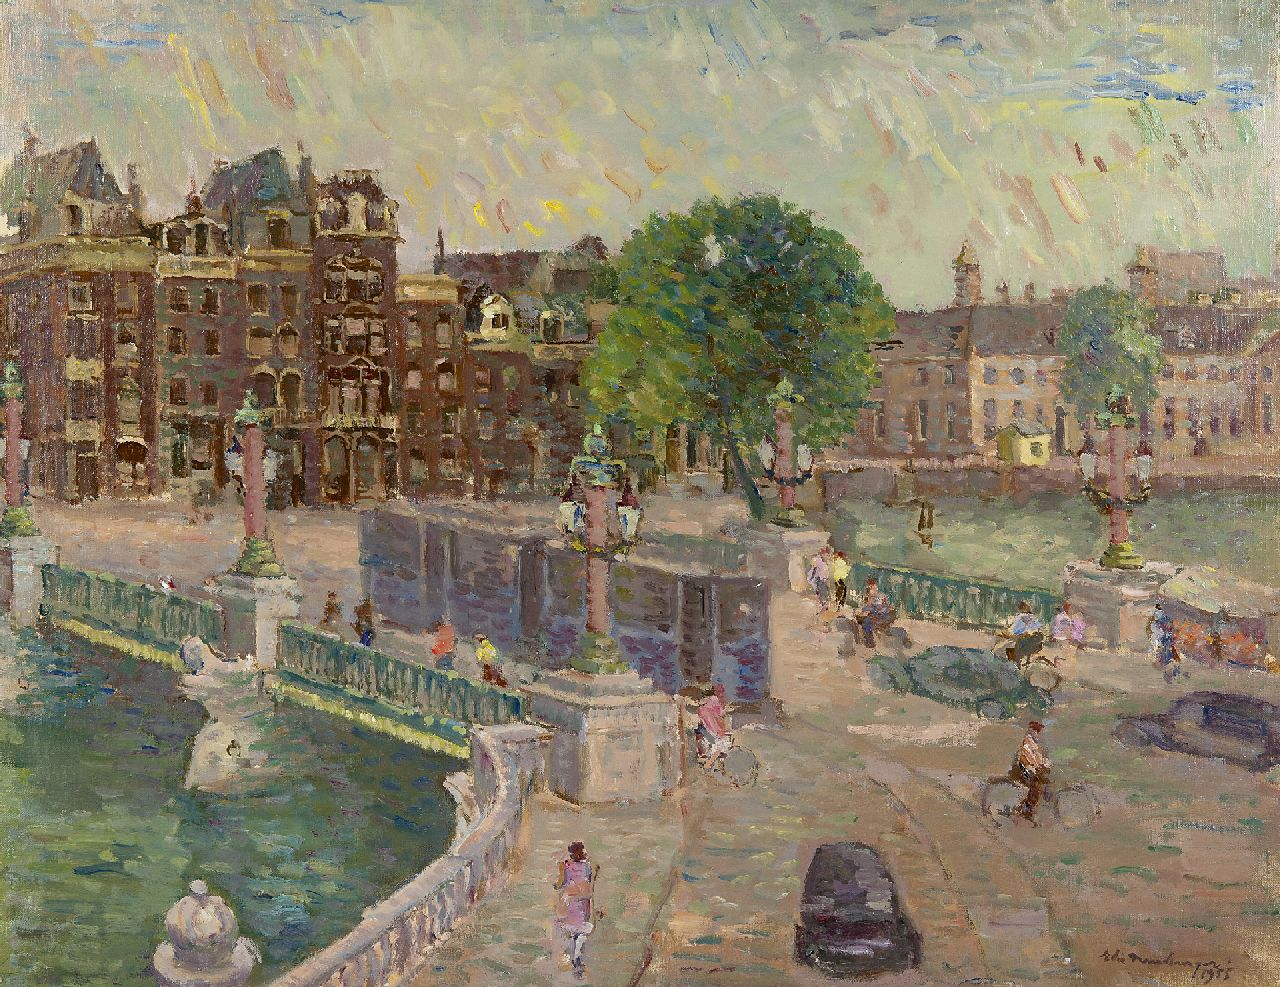 Neuburger E.  | Eliazer 'Elie' Neuburger, The Blauwbrug, Amsterdam, oil on canvas 47.8 x 60.8 cm, signed l.r. and dated 1955